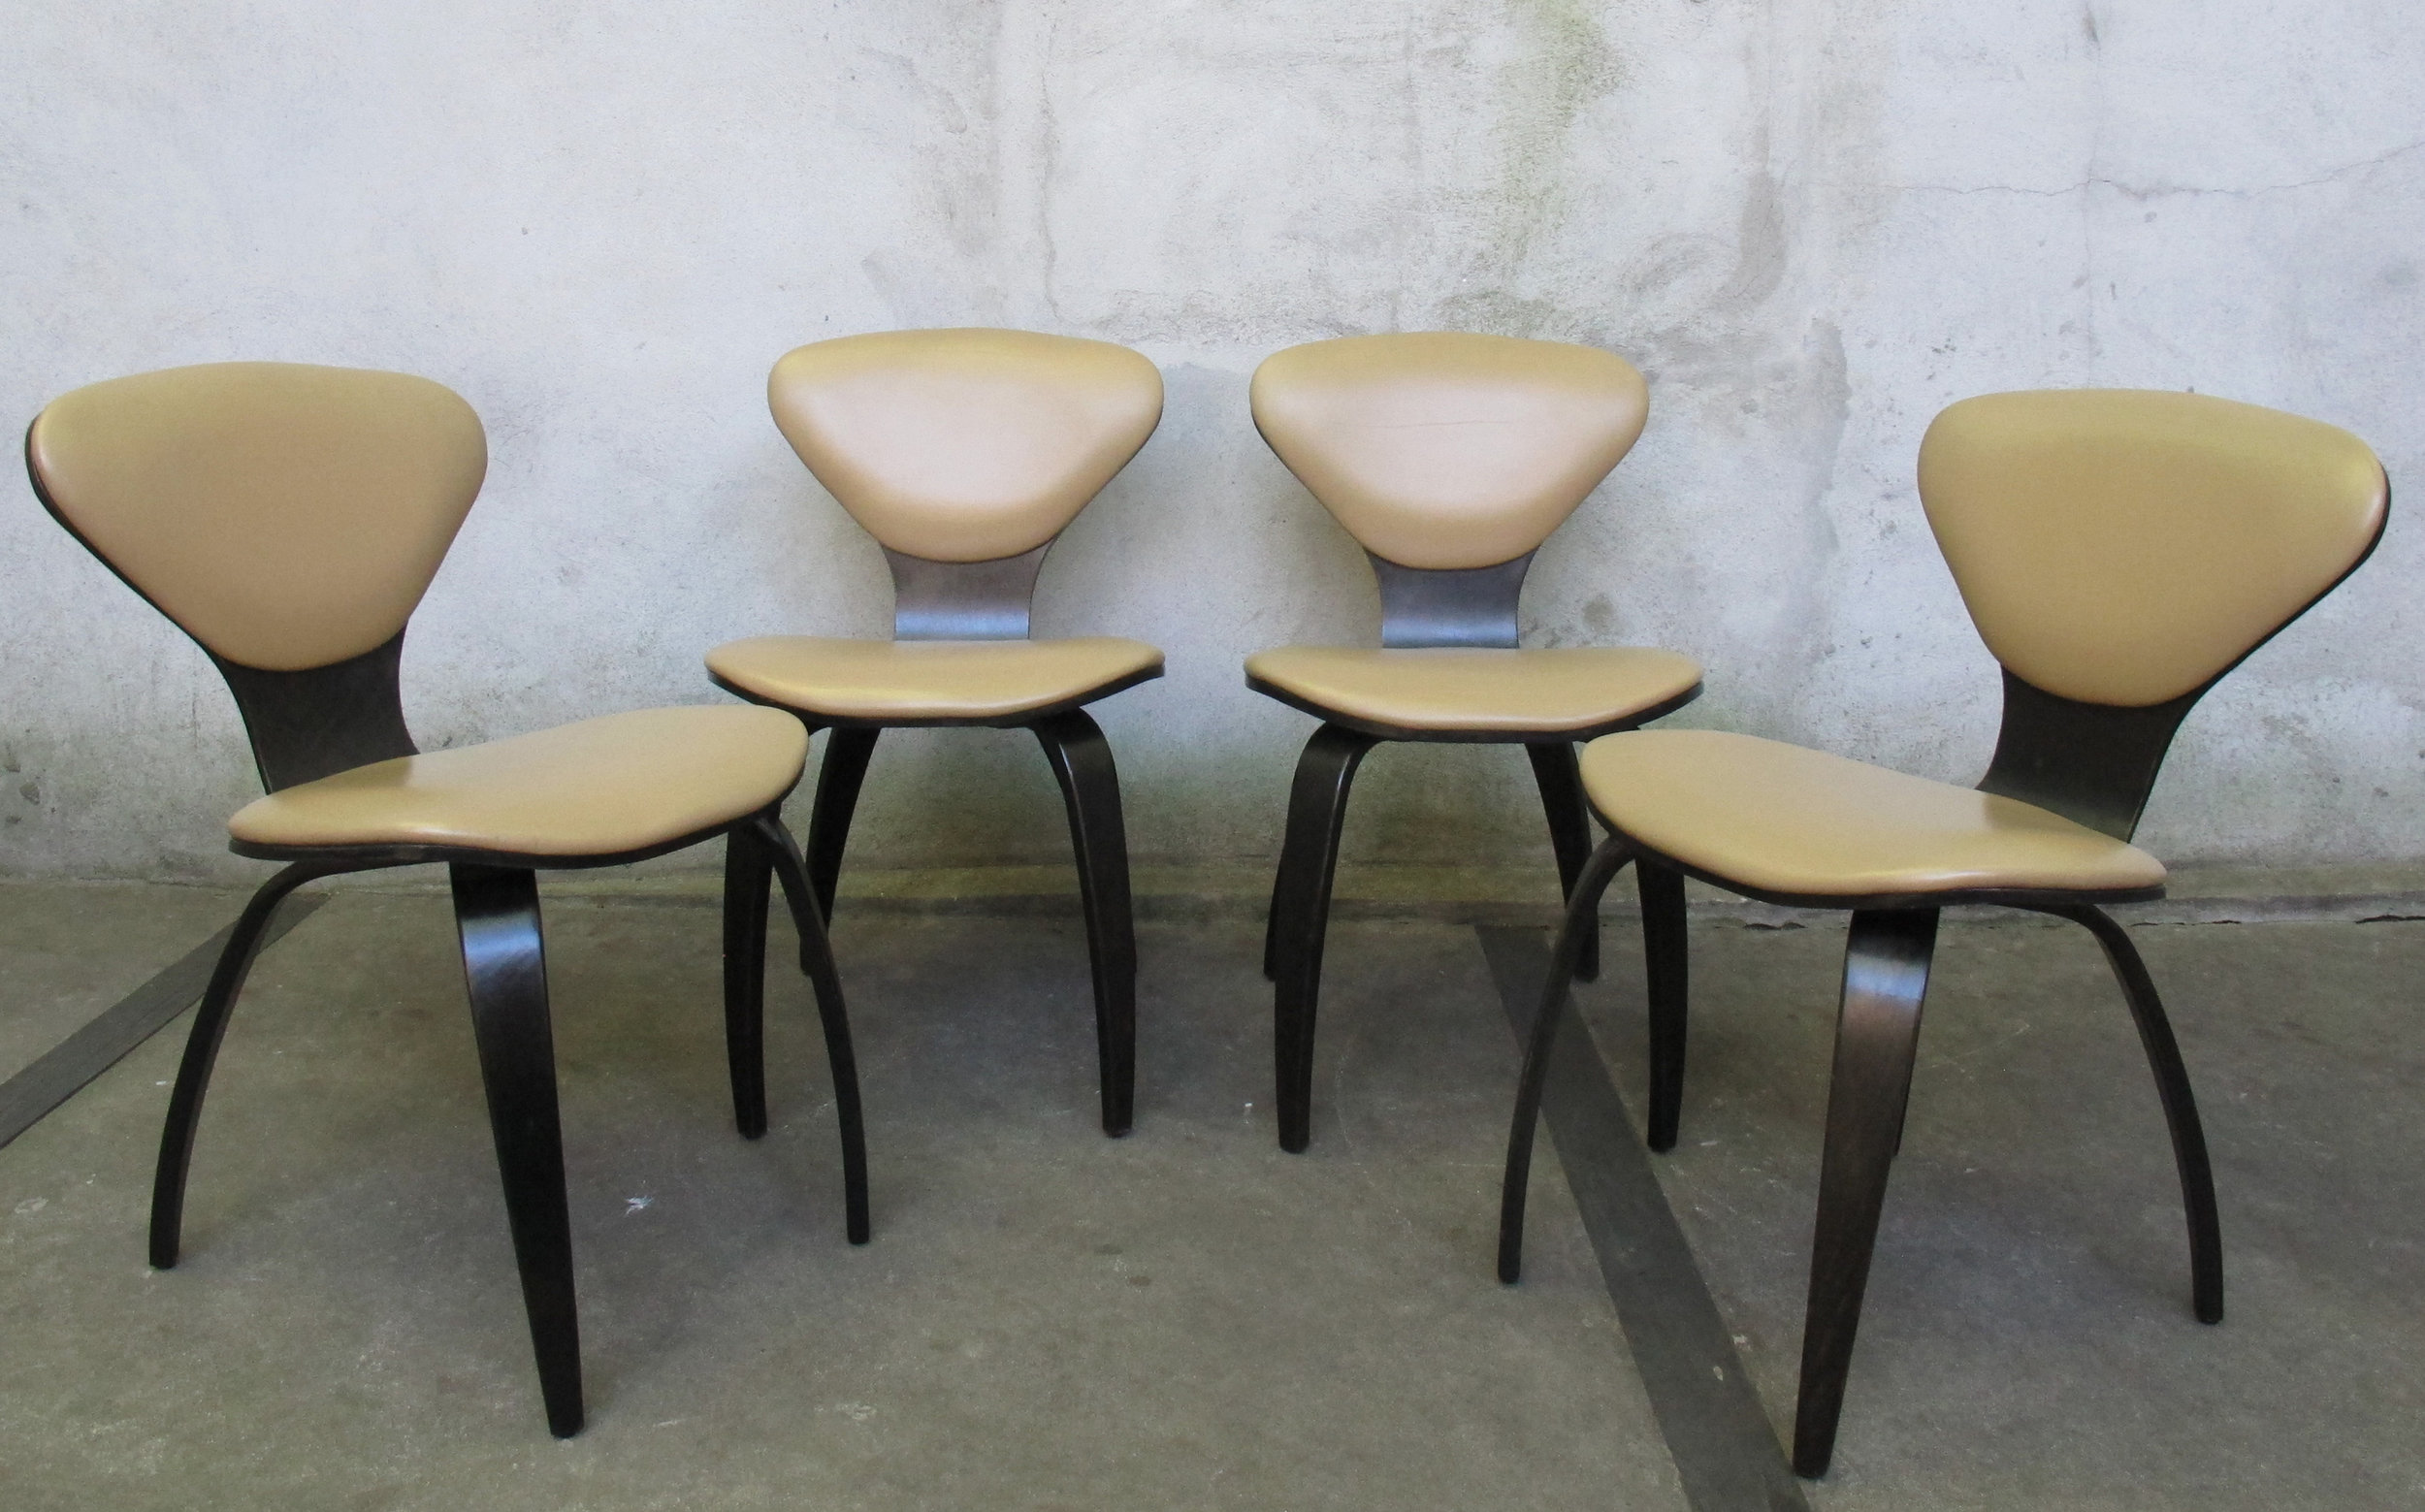 SET OF NORMAN CHERNER DINING CHAIRS BY PLYCRAFT